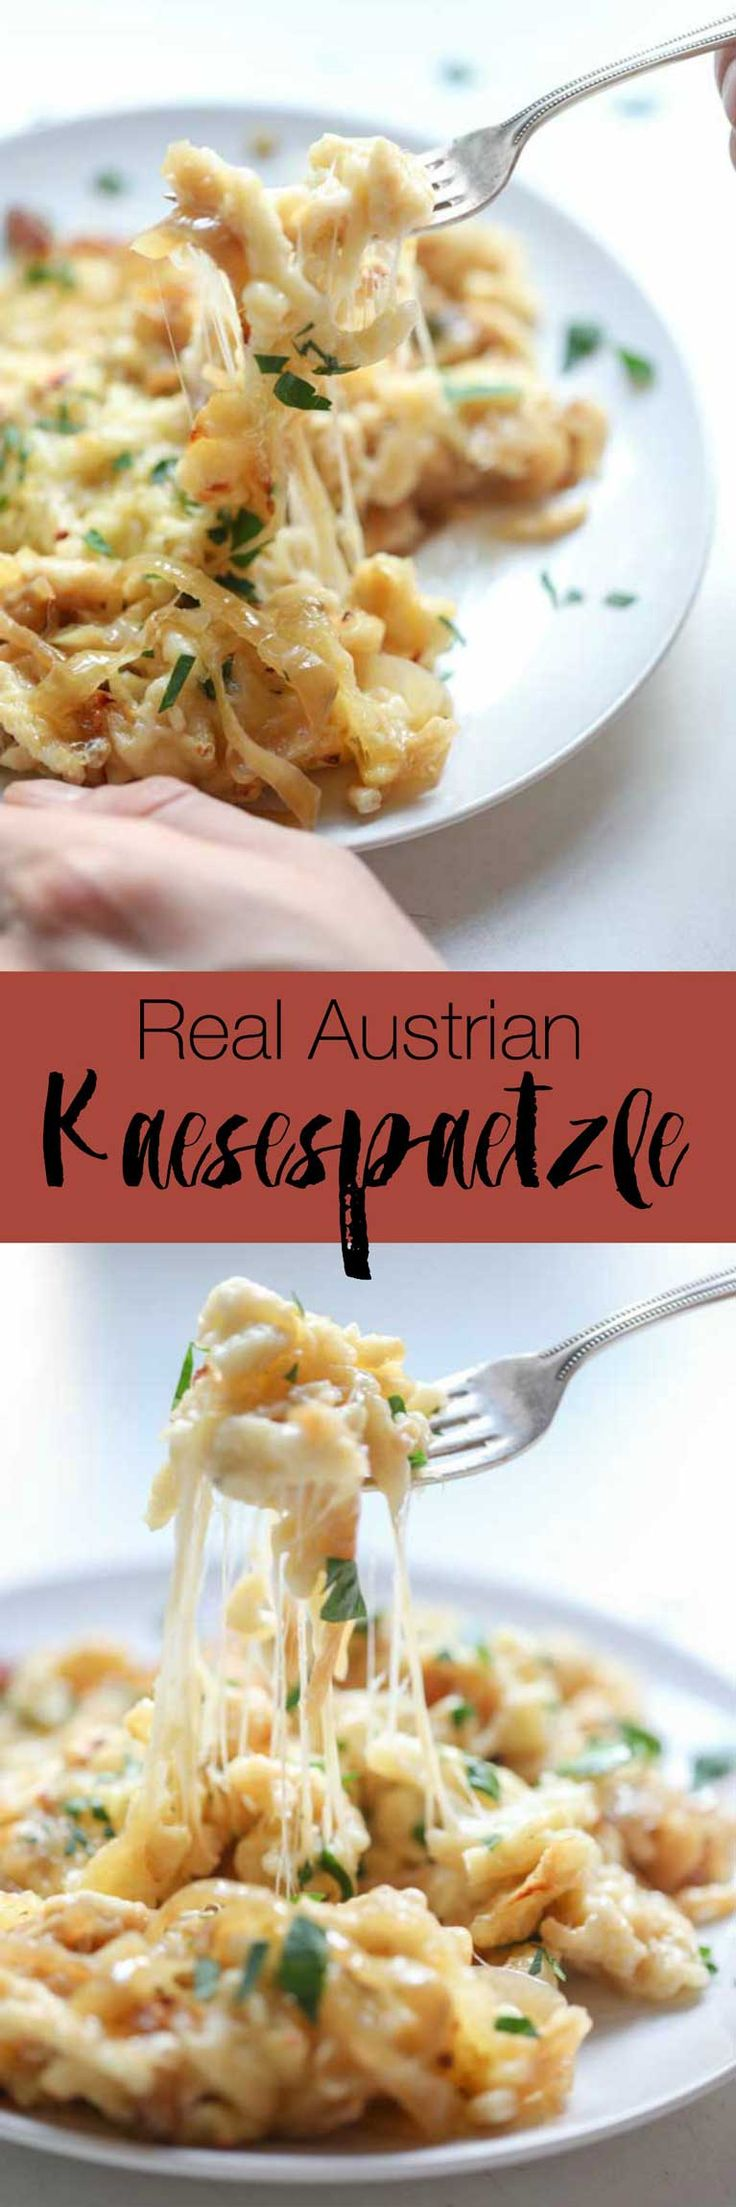 Cheese lovers beware! This austrian kaesespaetzle recipe will give you a stretchy cheese overdose :-)